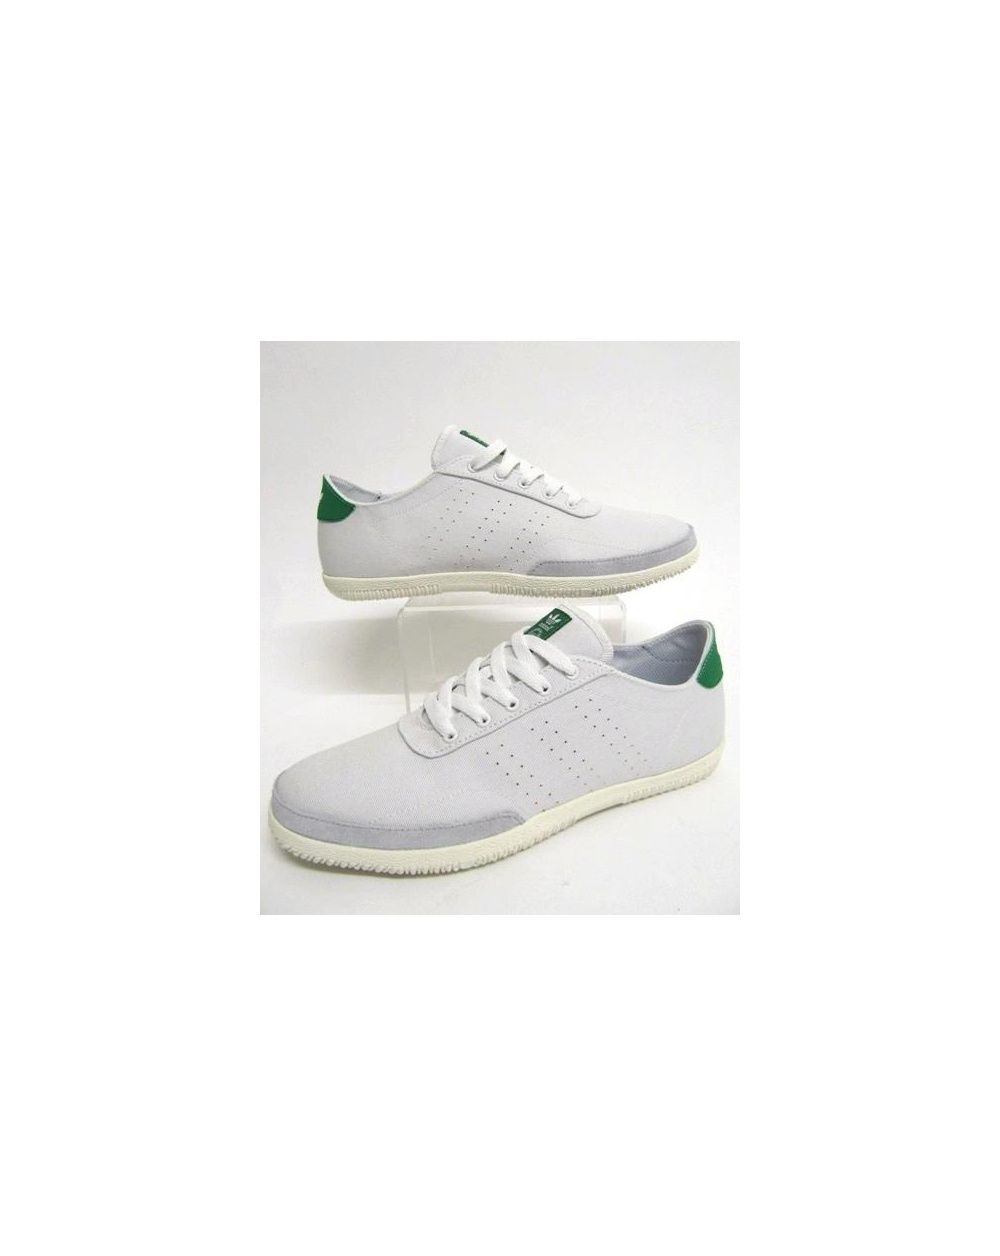 Adidas Neo White And Green